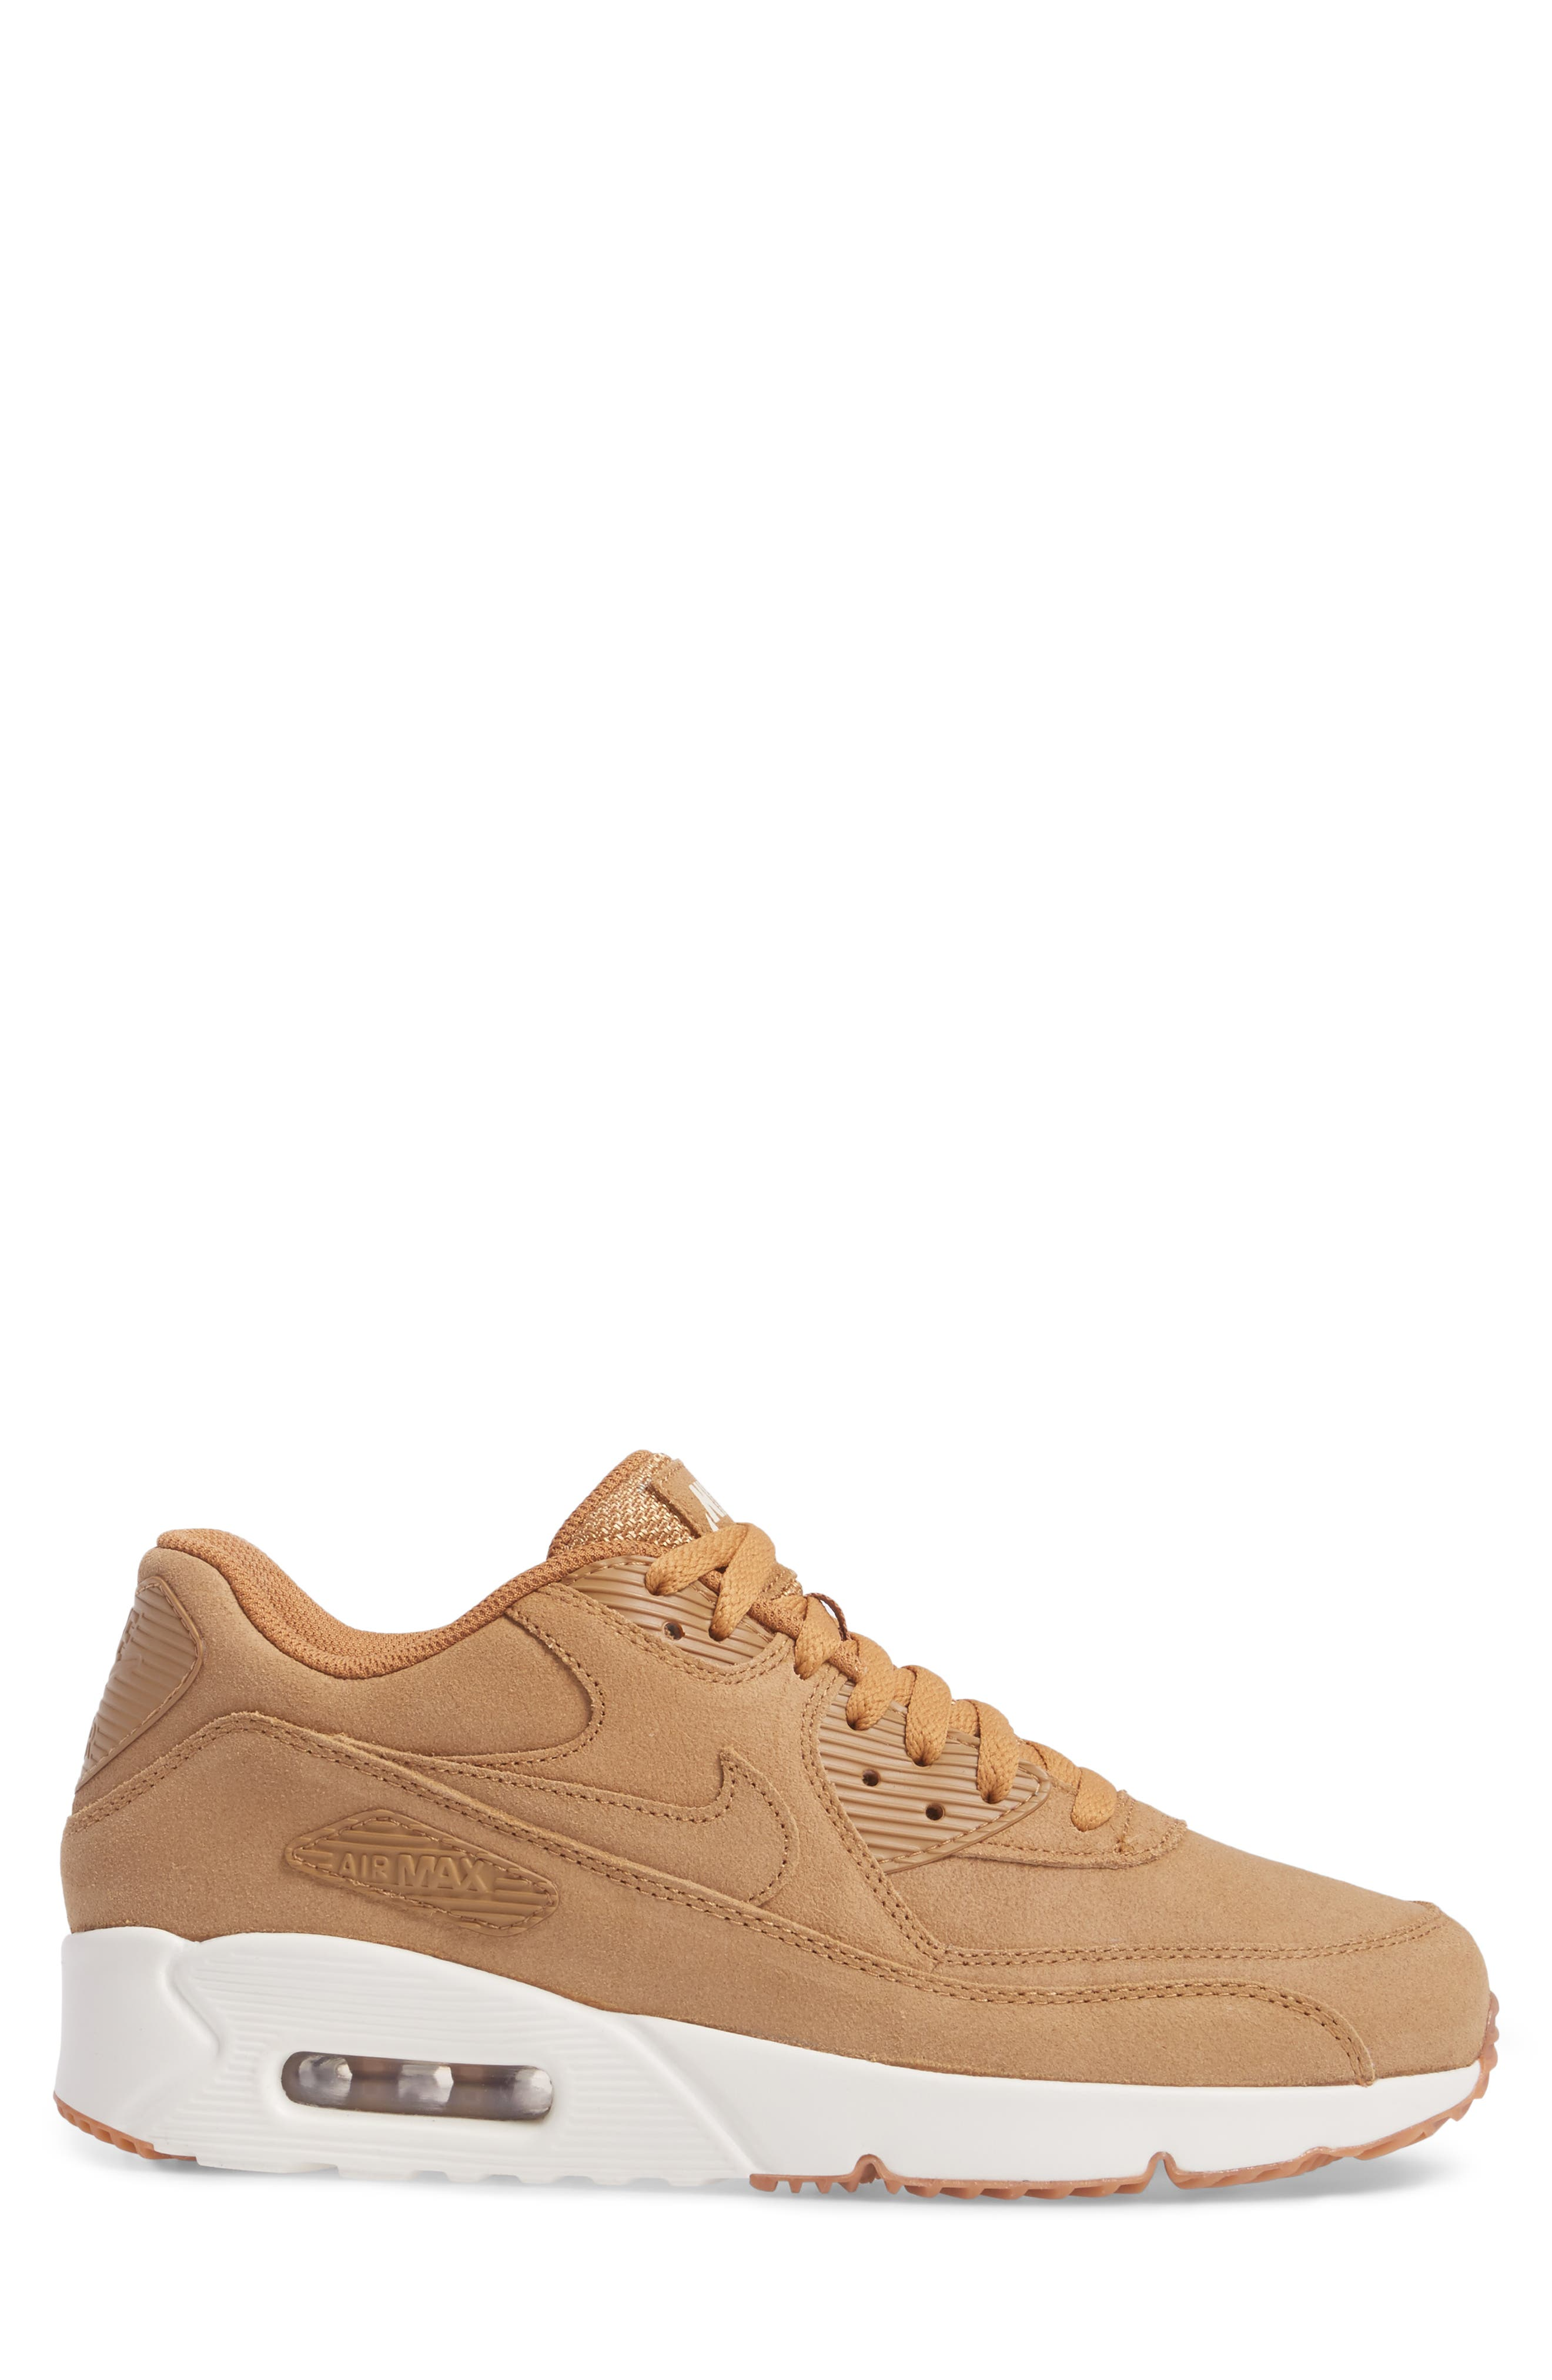 Air Max 90 Ultra 2.0 Sneaker,                             Alternate thumbnail 3, color,                             Flax/Flax/Sail/Gum Med Brown